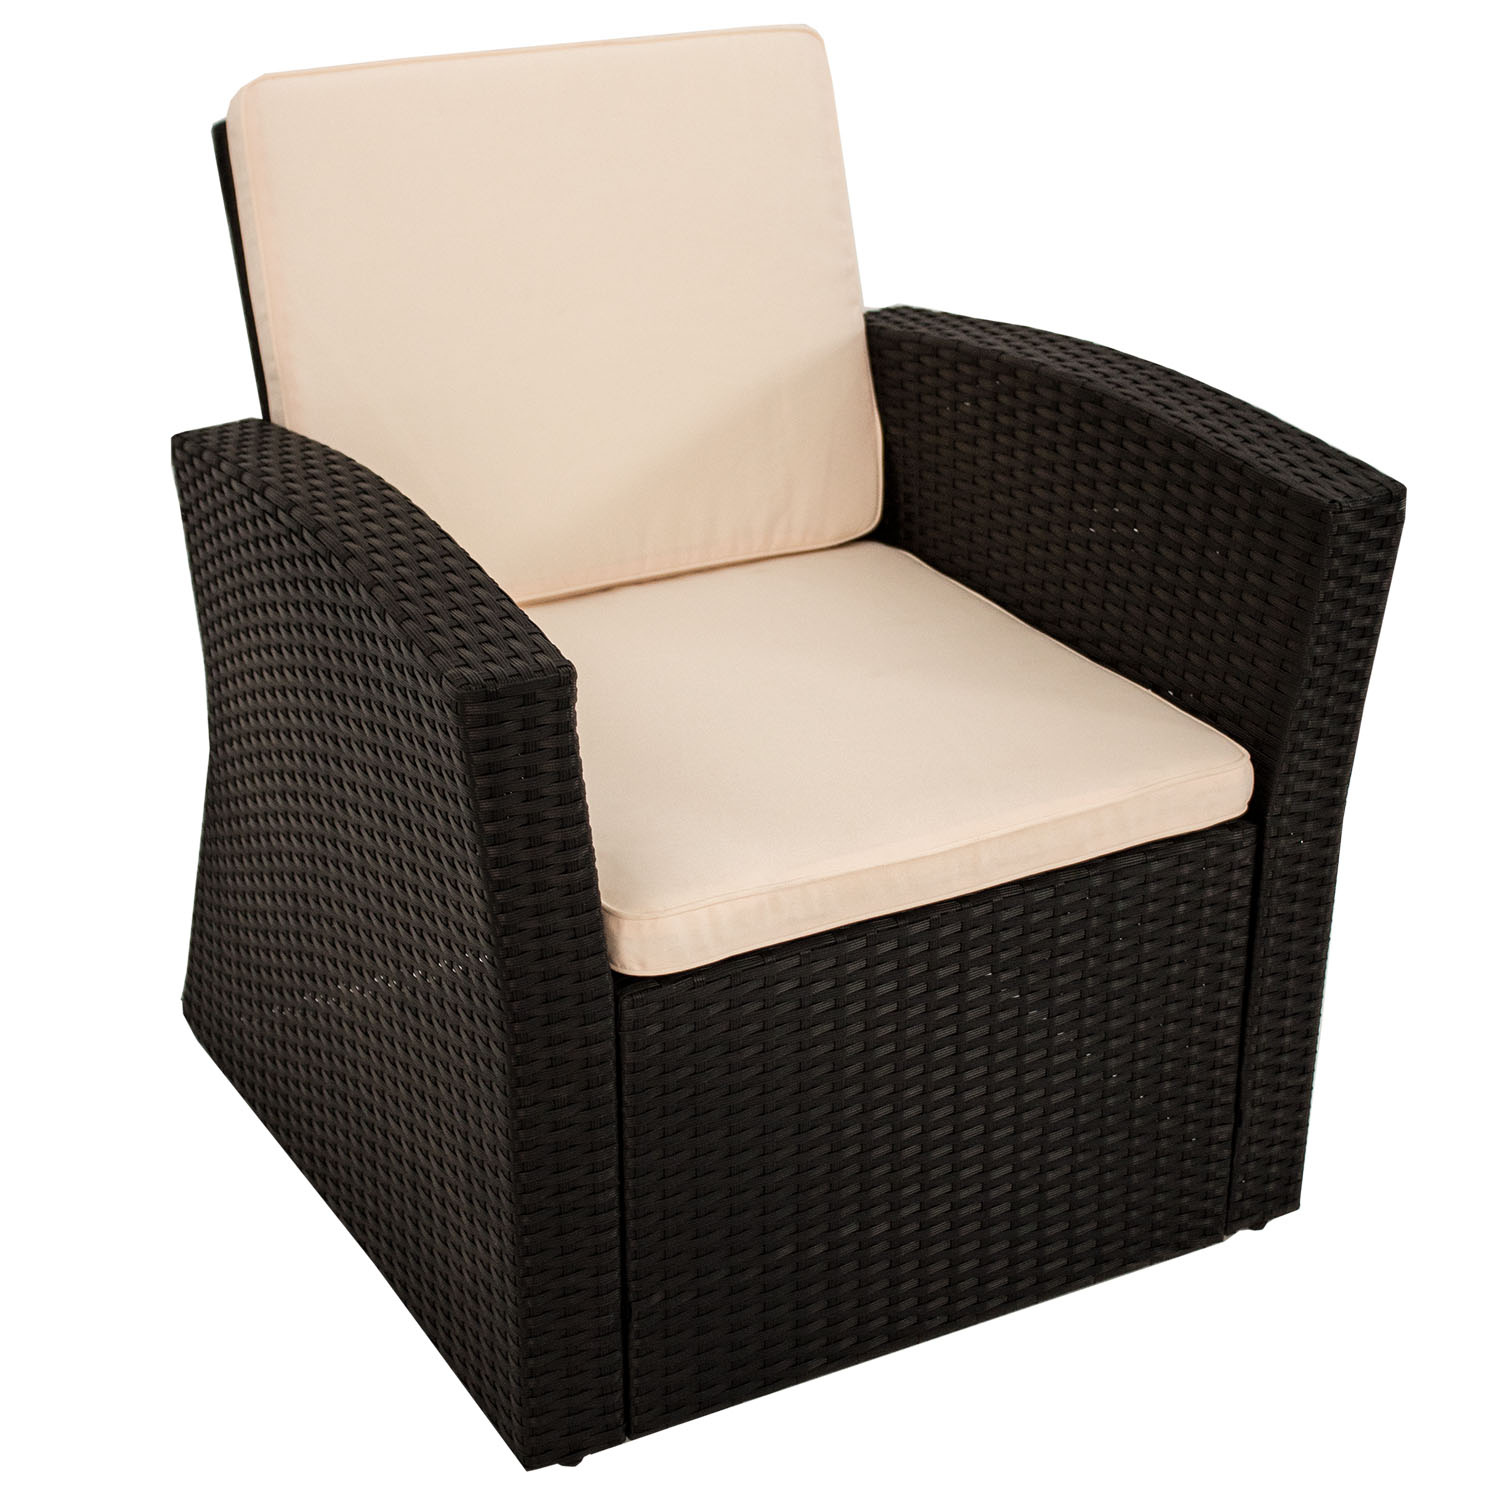 polyrattan sitzgruppe lounge gartenm bel gartenset rattan. Black Bedroom Furniture Sets. Home Design Ideas